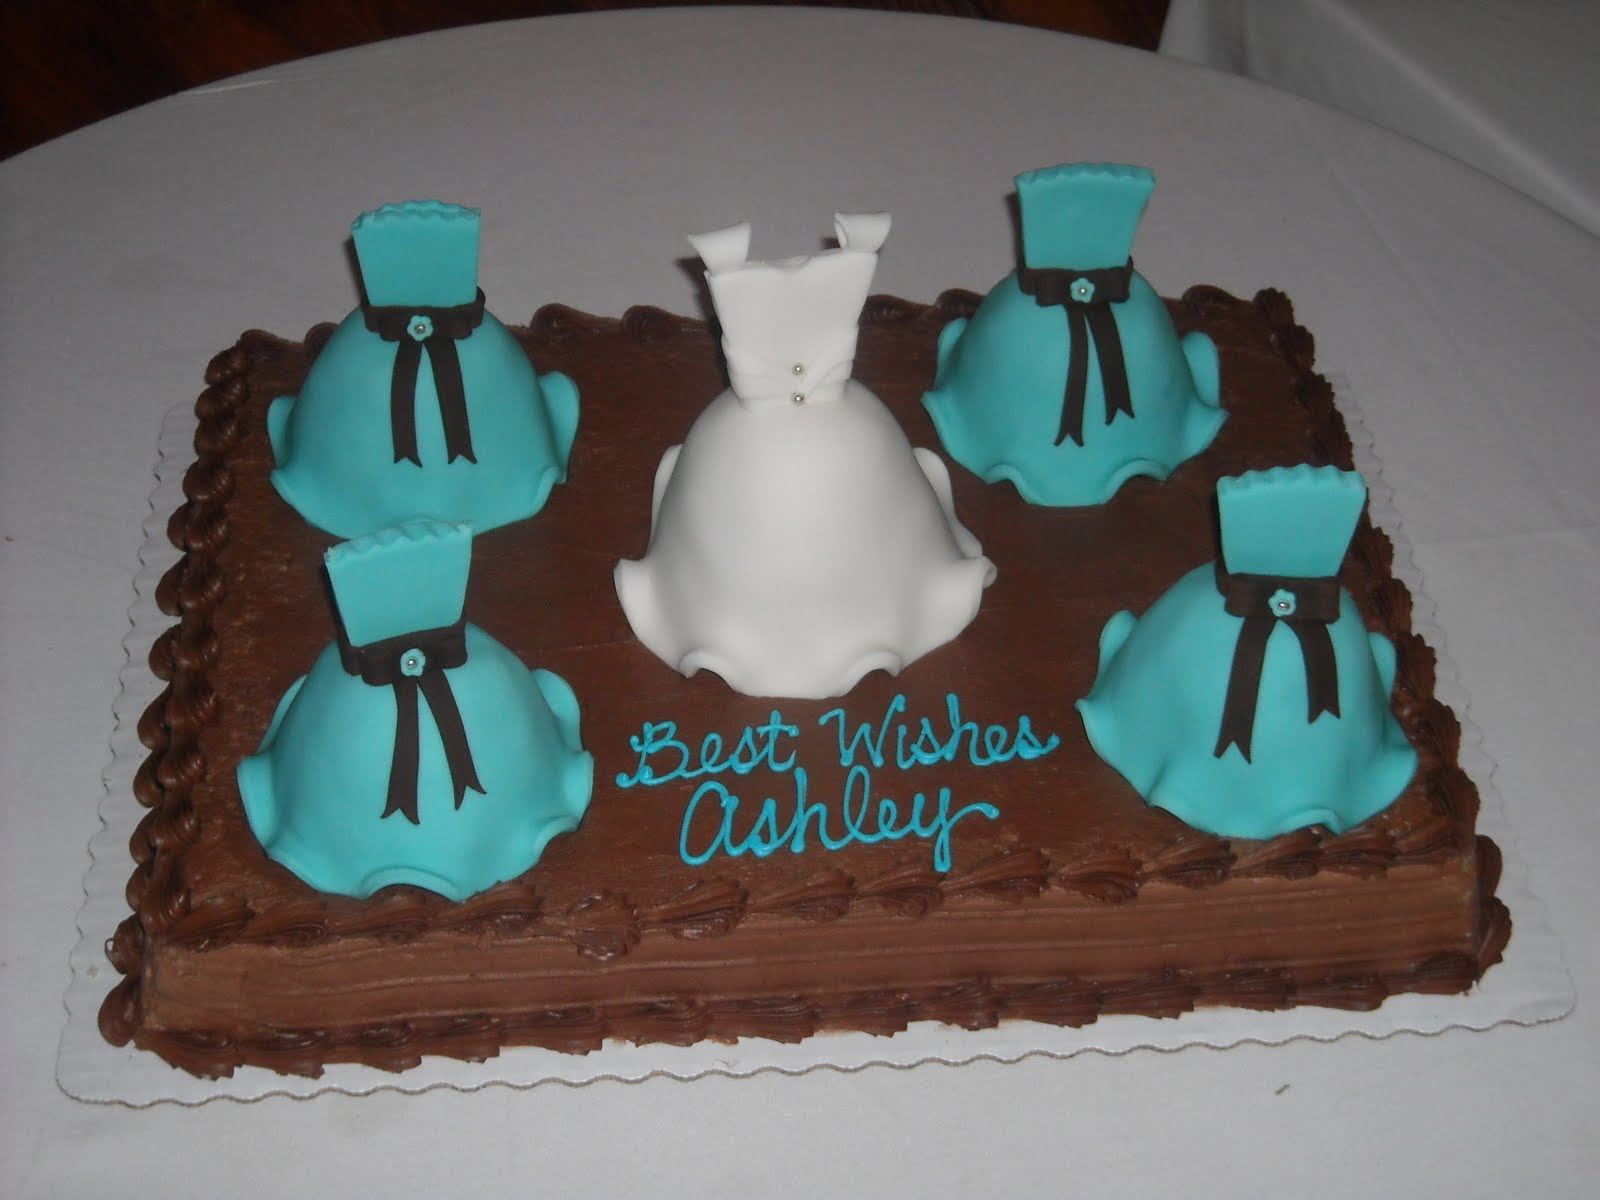 Cake Designs For A Bridal Shower : For Batter or For Worse...: April 2010